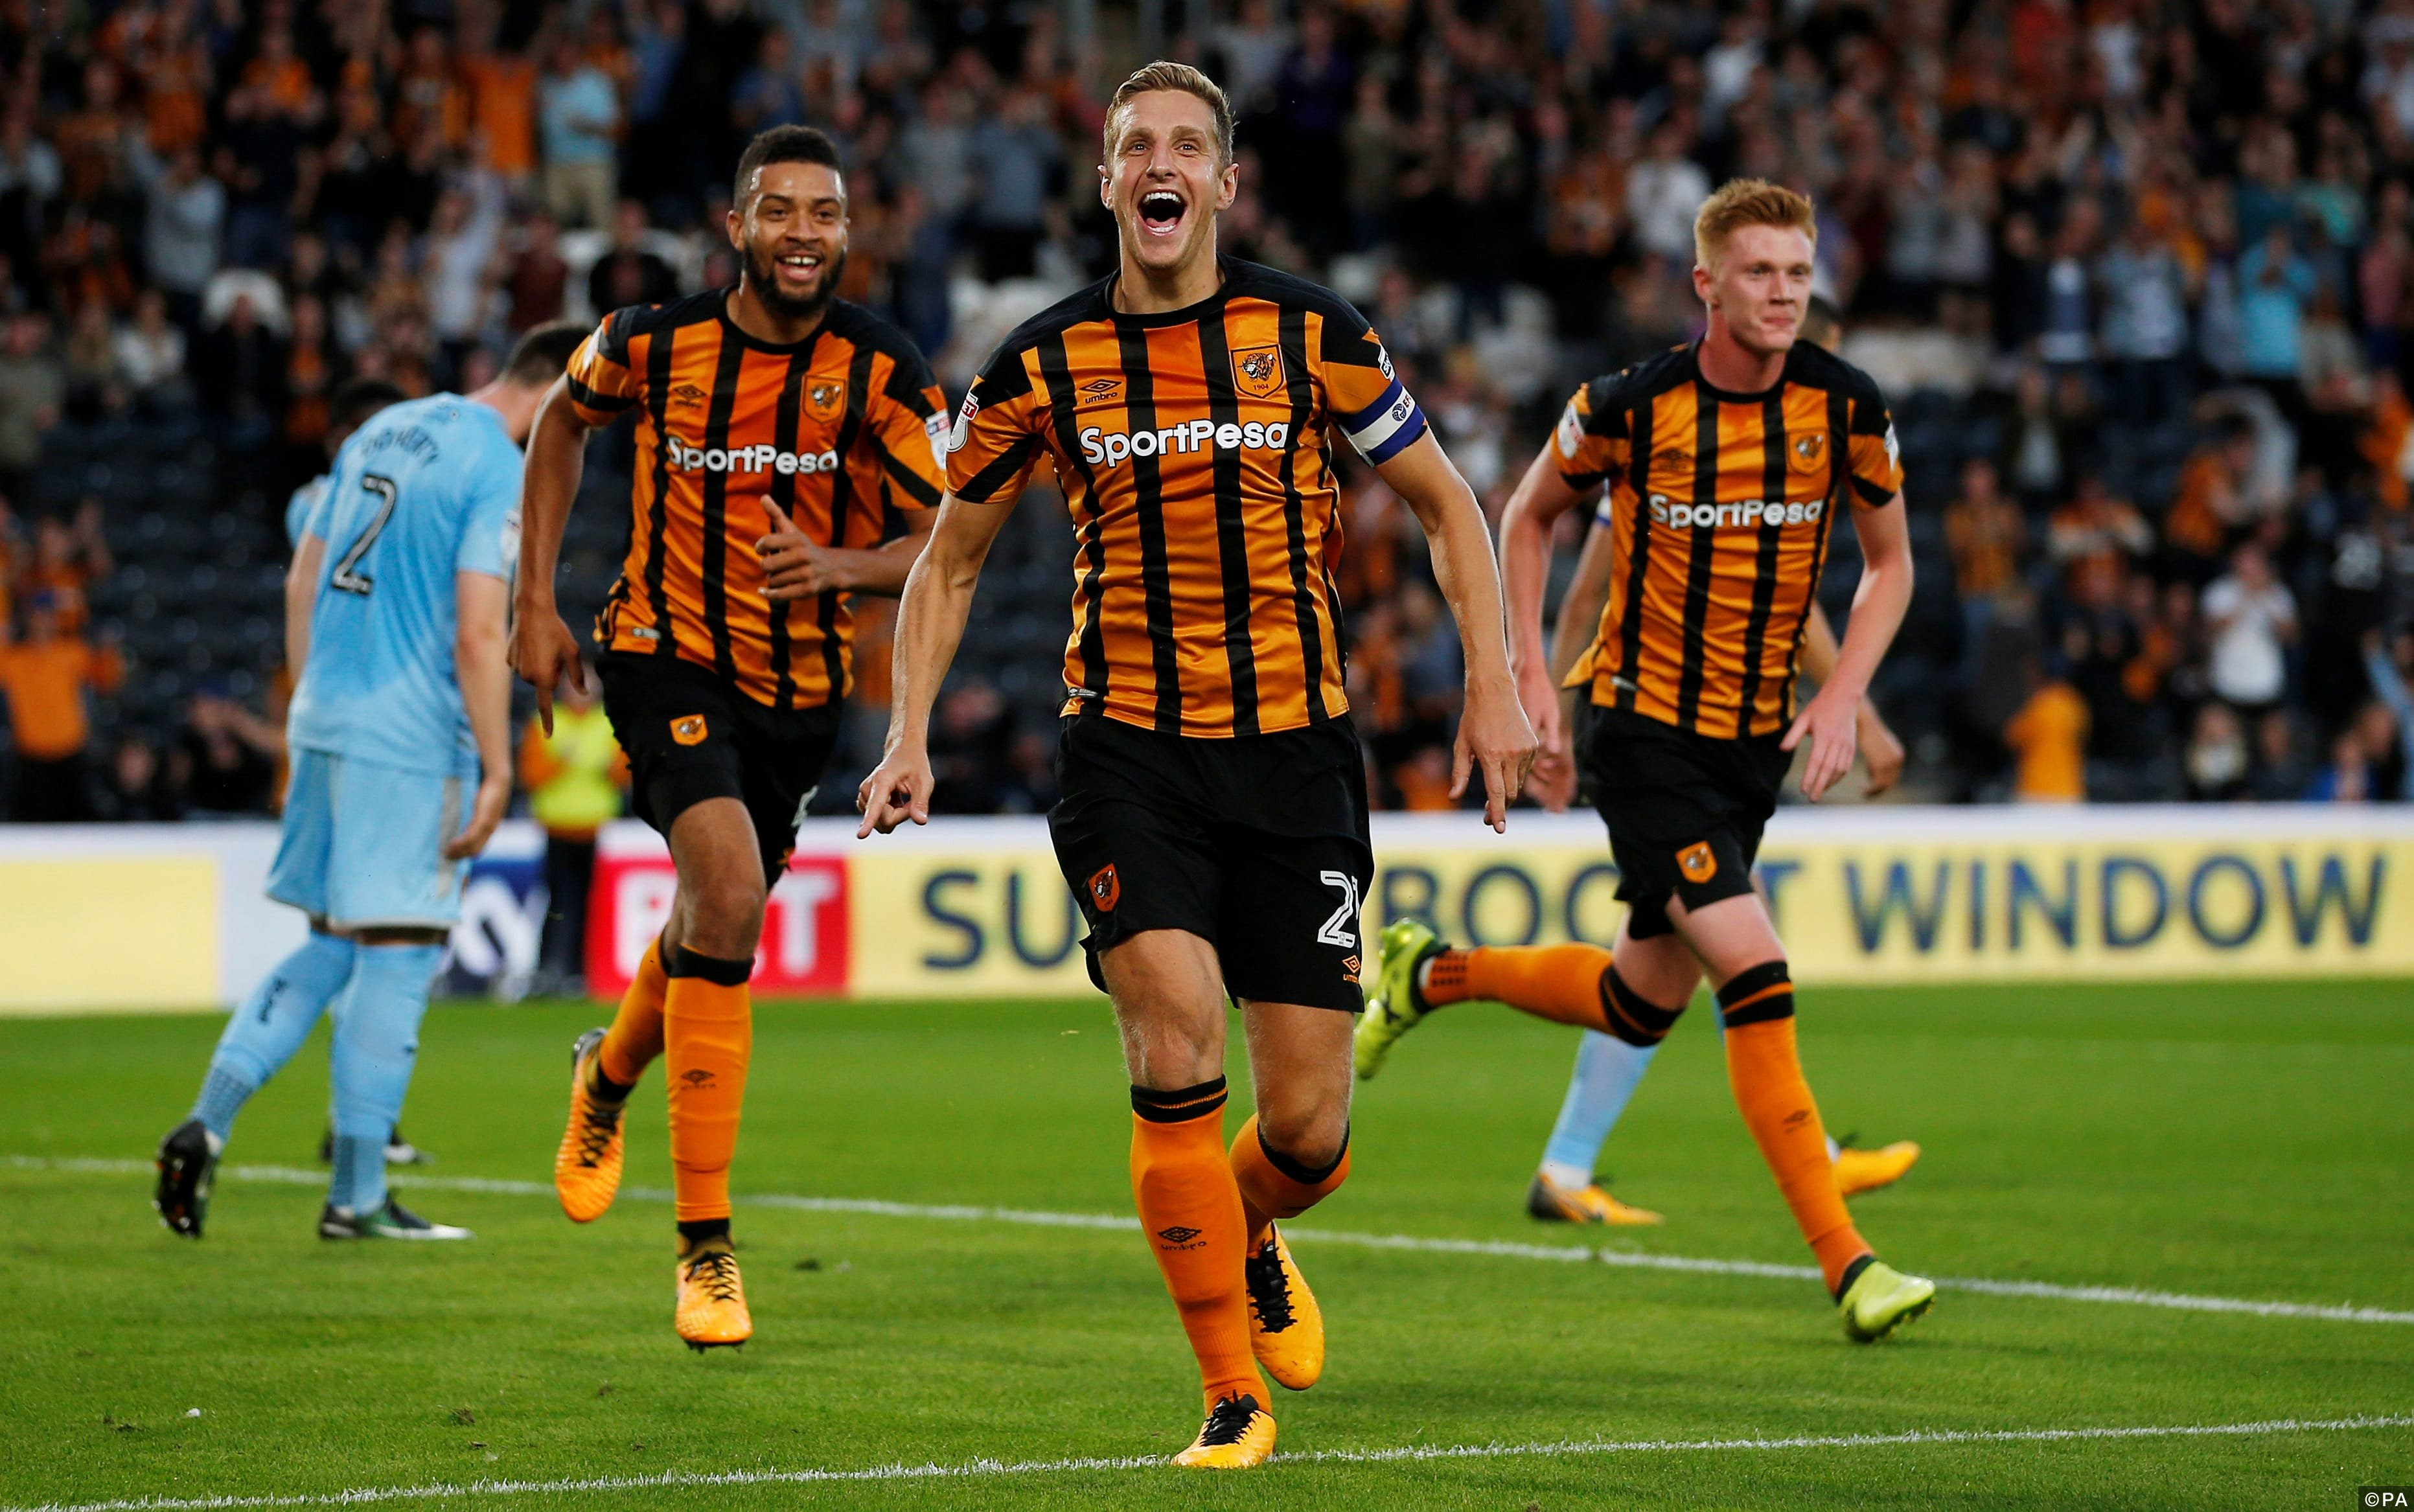 Hull City vs Barnsley